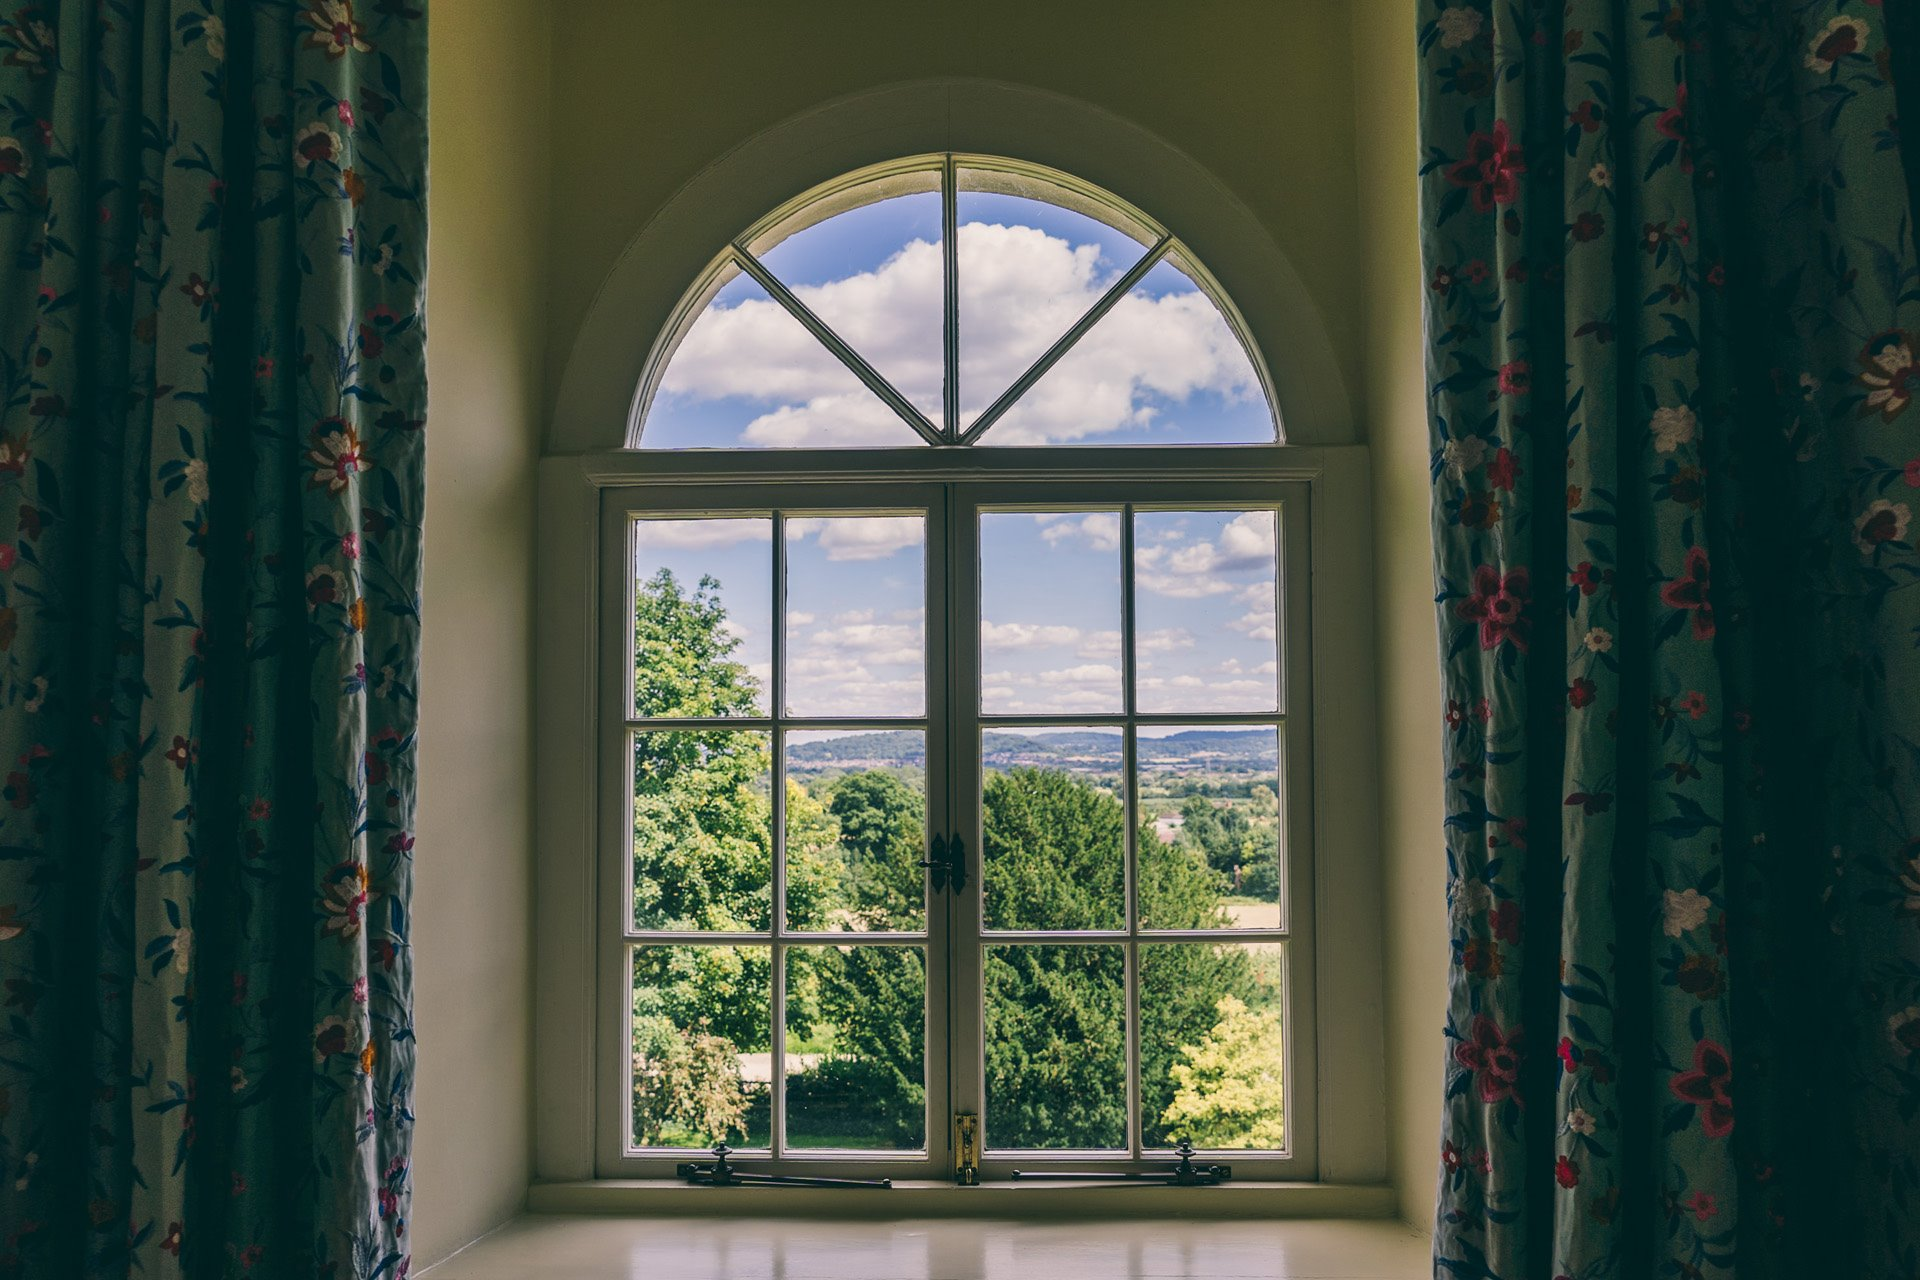 View of the cotswolds countryside from the window of the Time bedroom at wedding venue elmore court